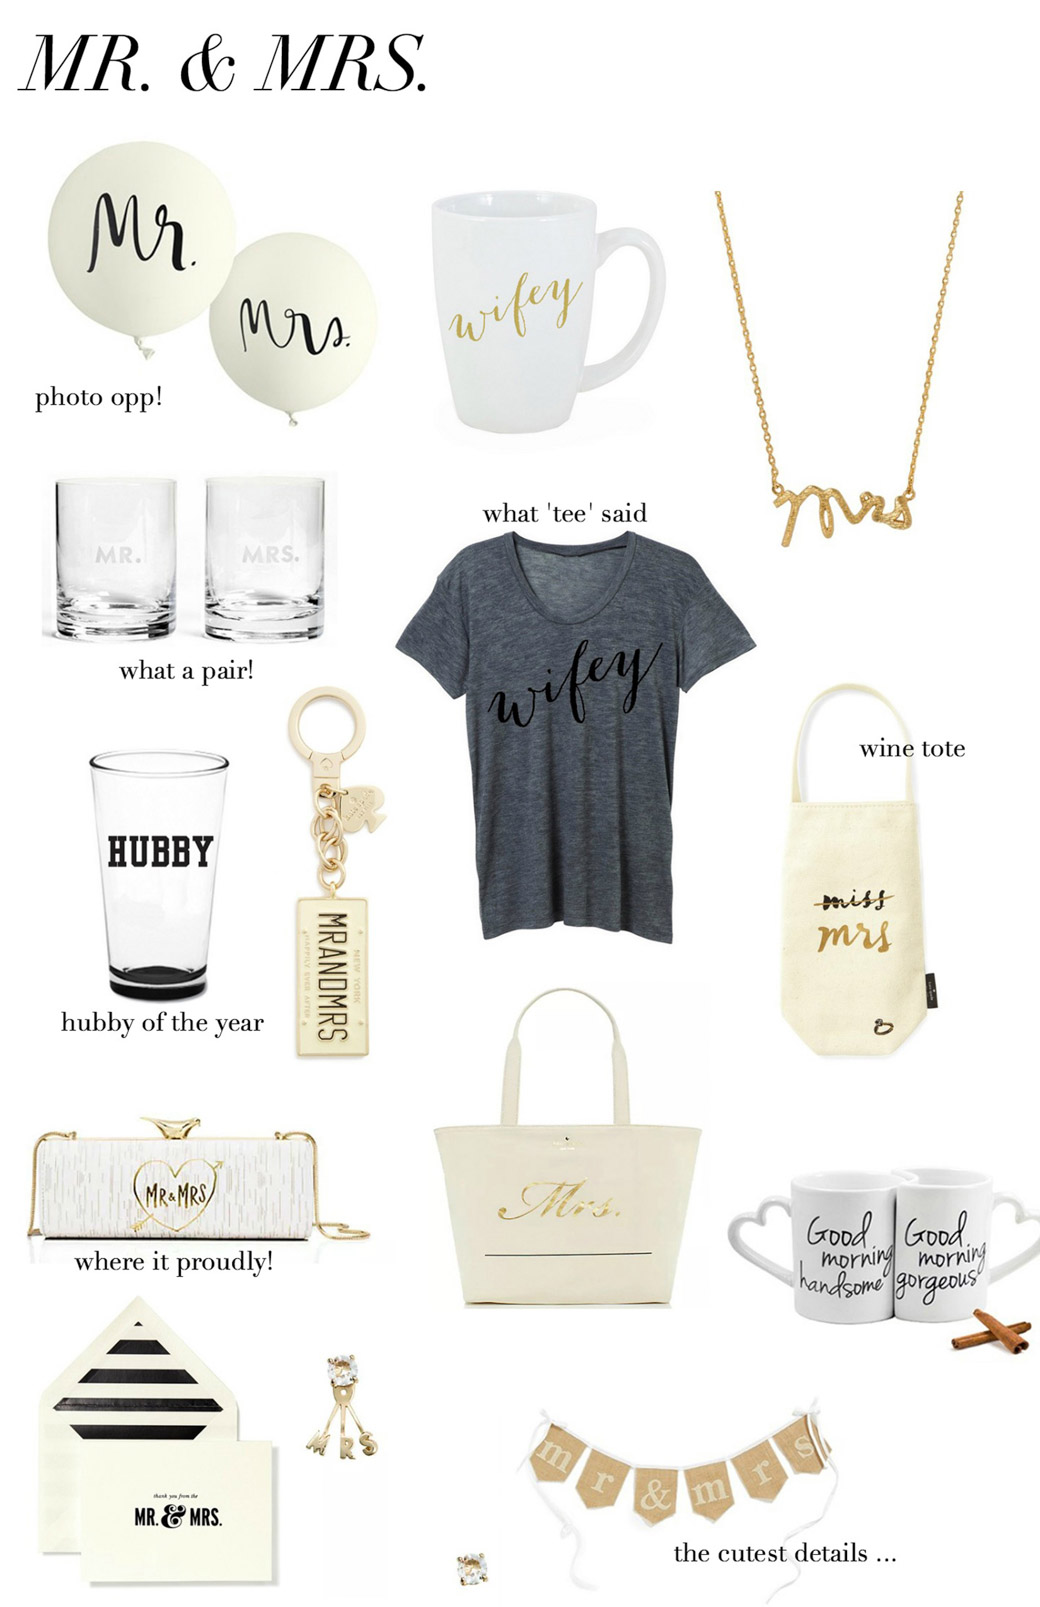 Wedding stop | his & hers gifts